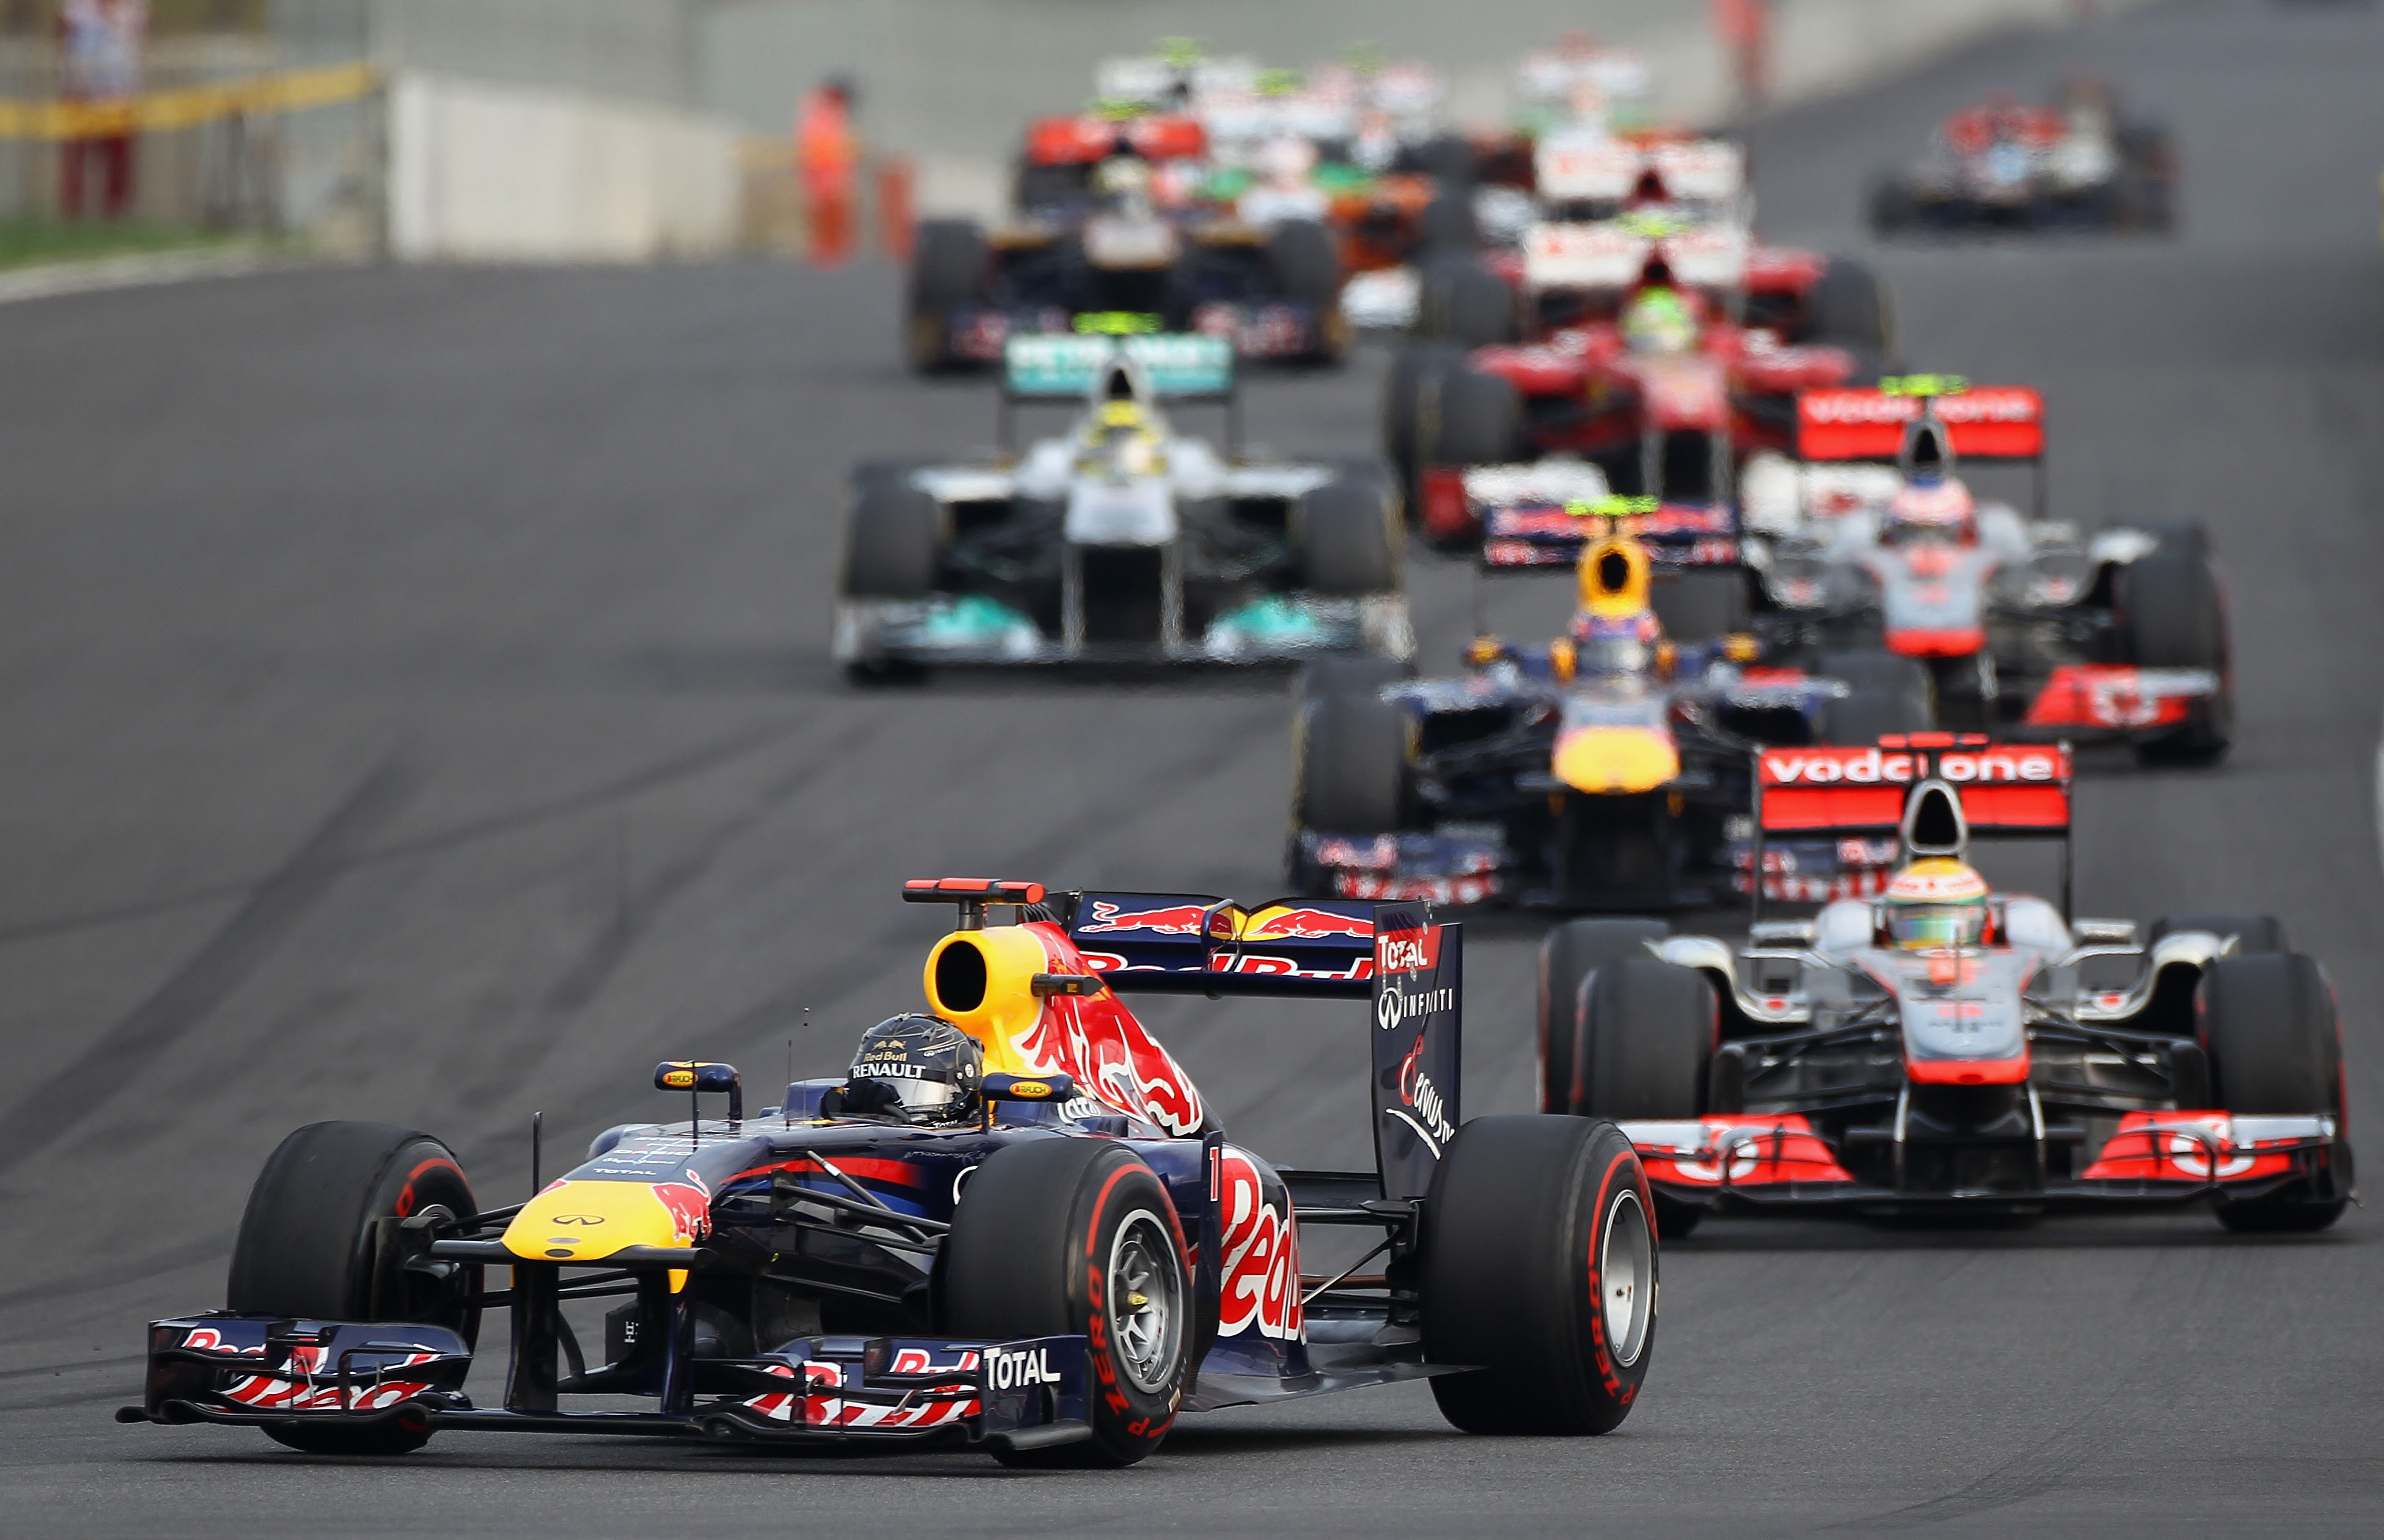 formula one Formula one is only a shadow of its glory days of the 60's, 70's, 80's and early 90's granted, the cars are safer now but, excessive regulations, irrational .